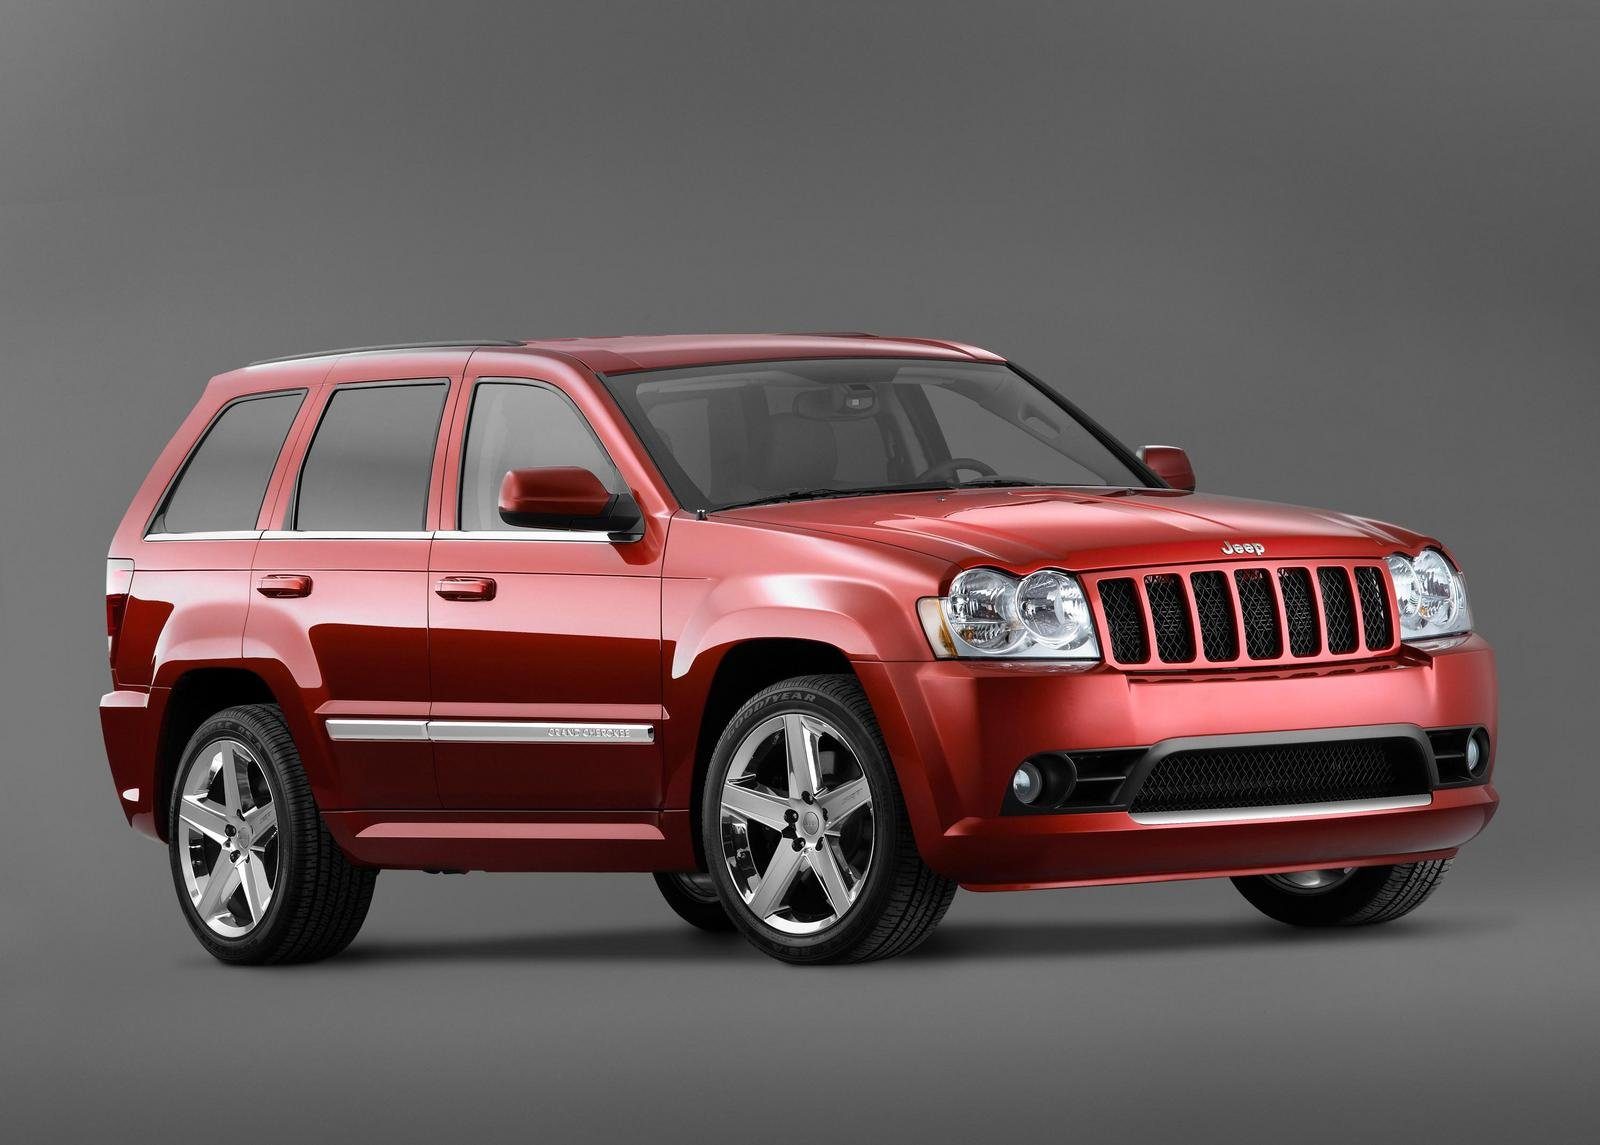 2007 jeep grand cherokee srt8 review top speed. Black Bedroom Furniture Sets. Home Design Ideas